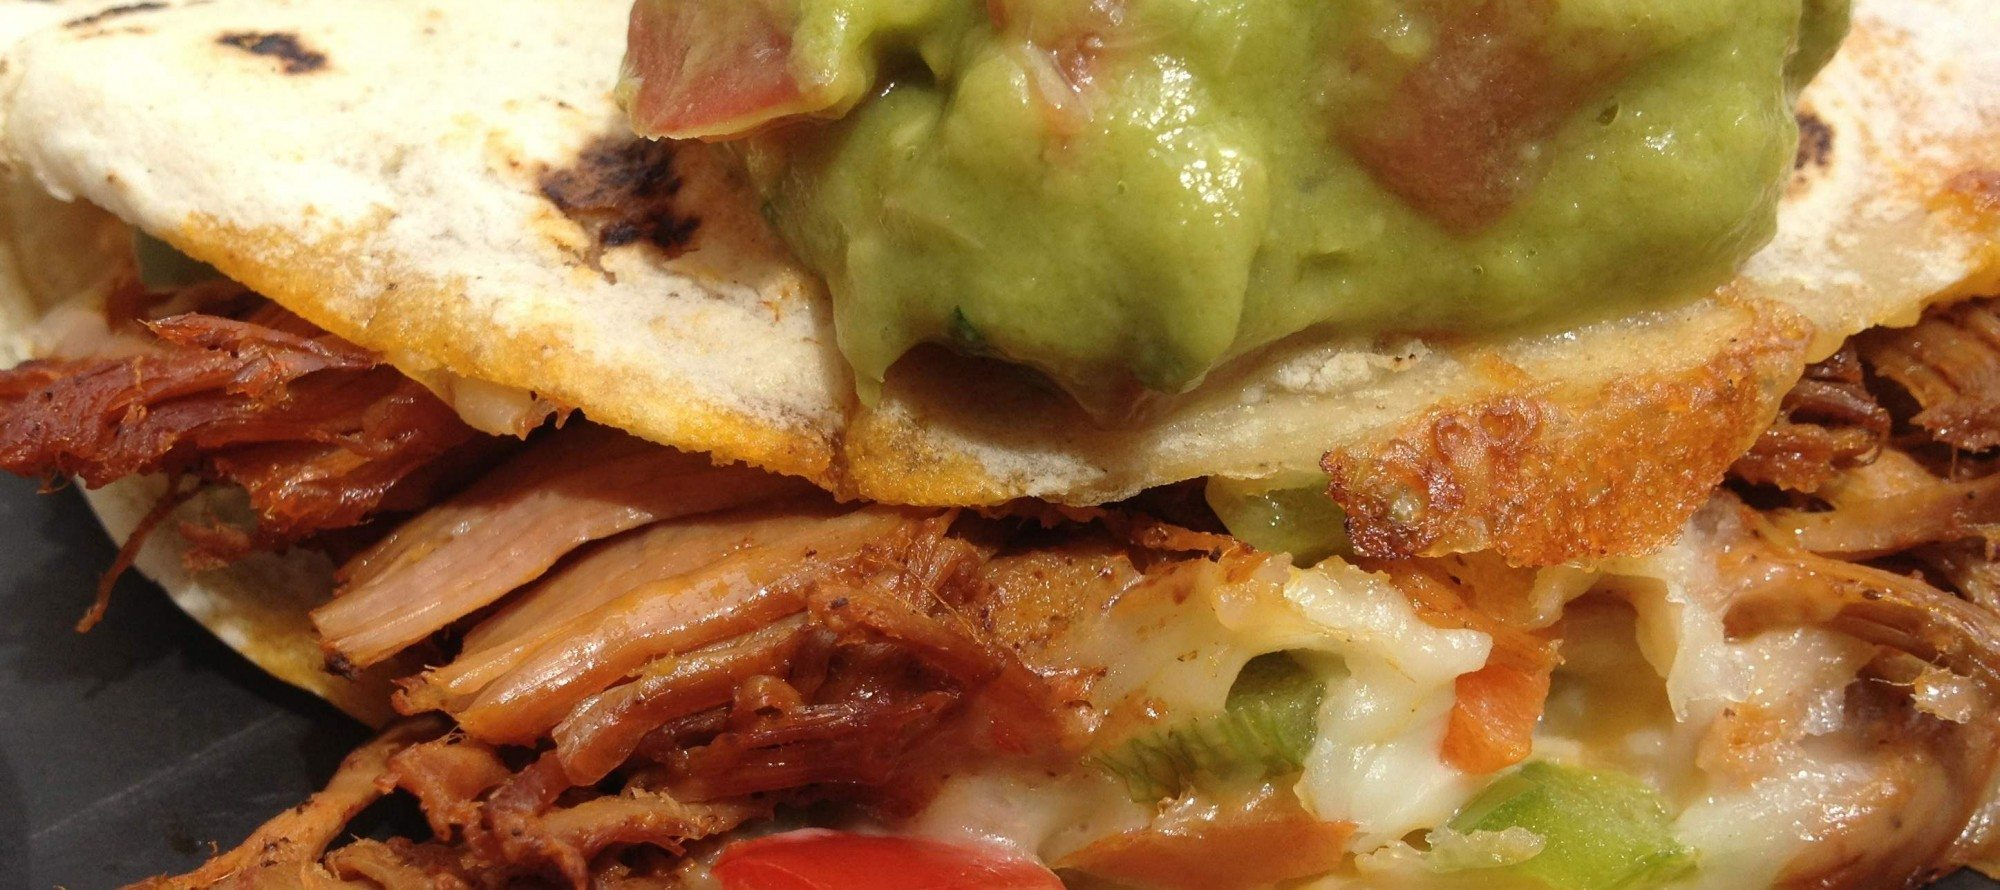 WEEKLY LUNCH PICK: Pulled pork taco from Corazón de Maíz